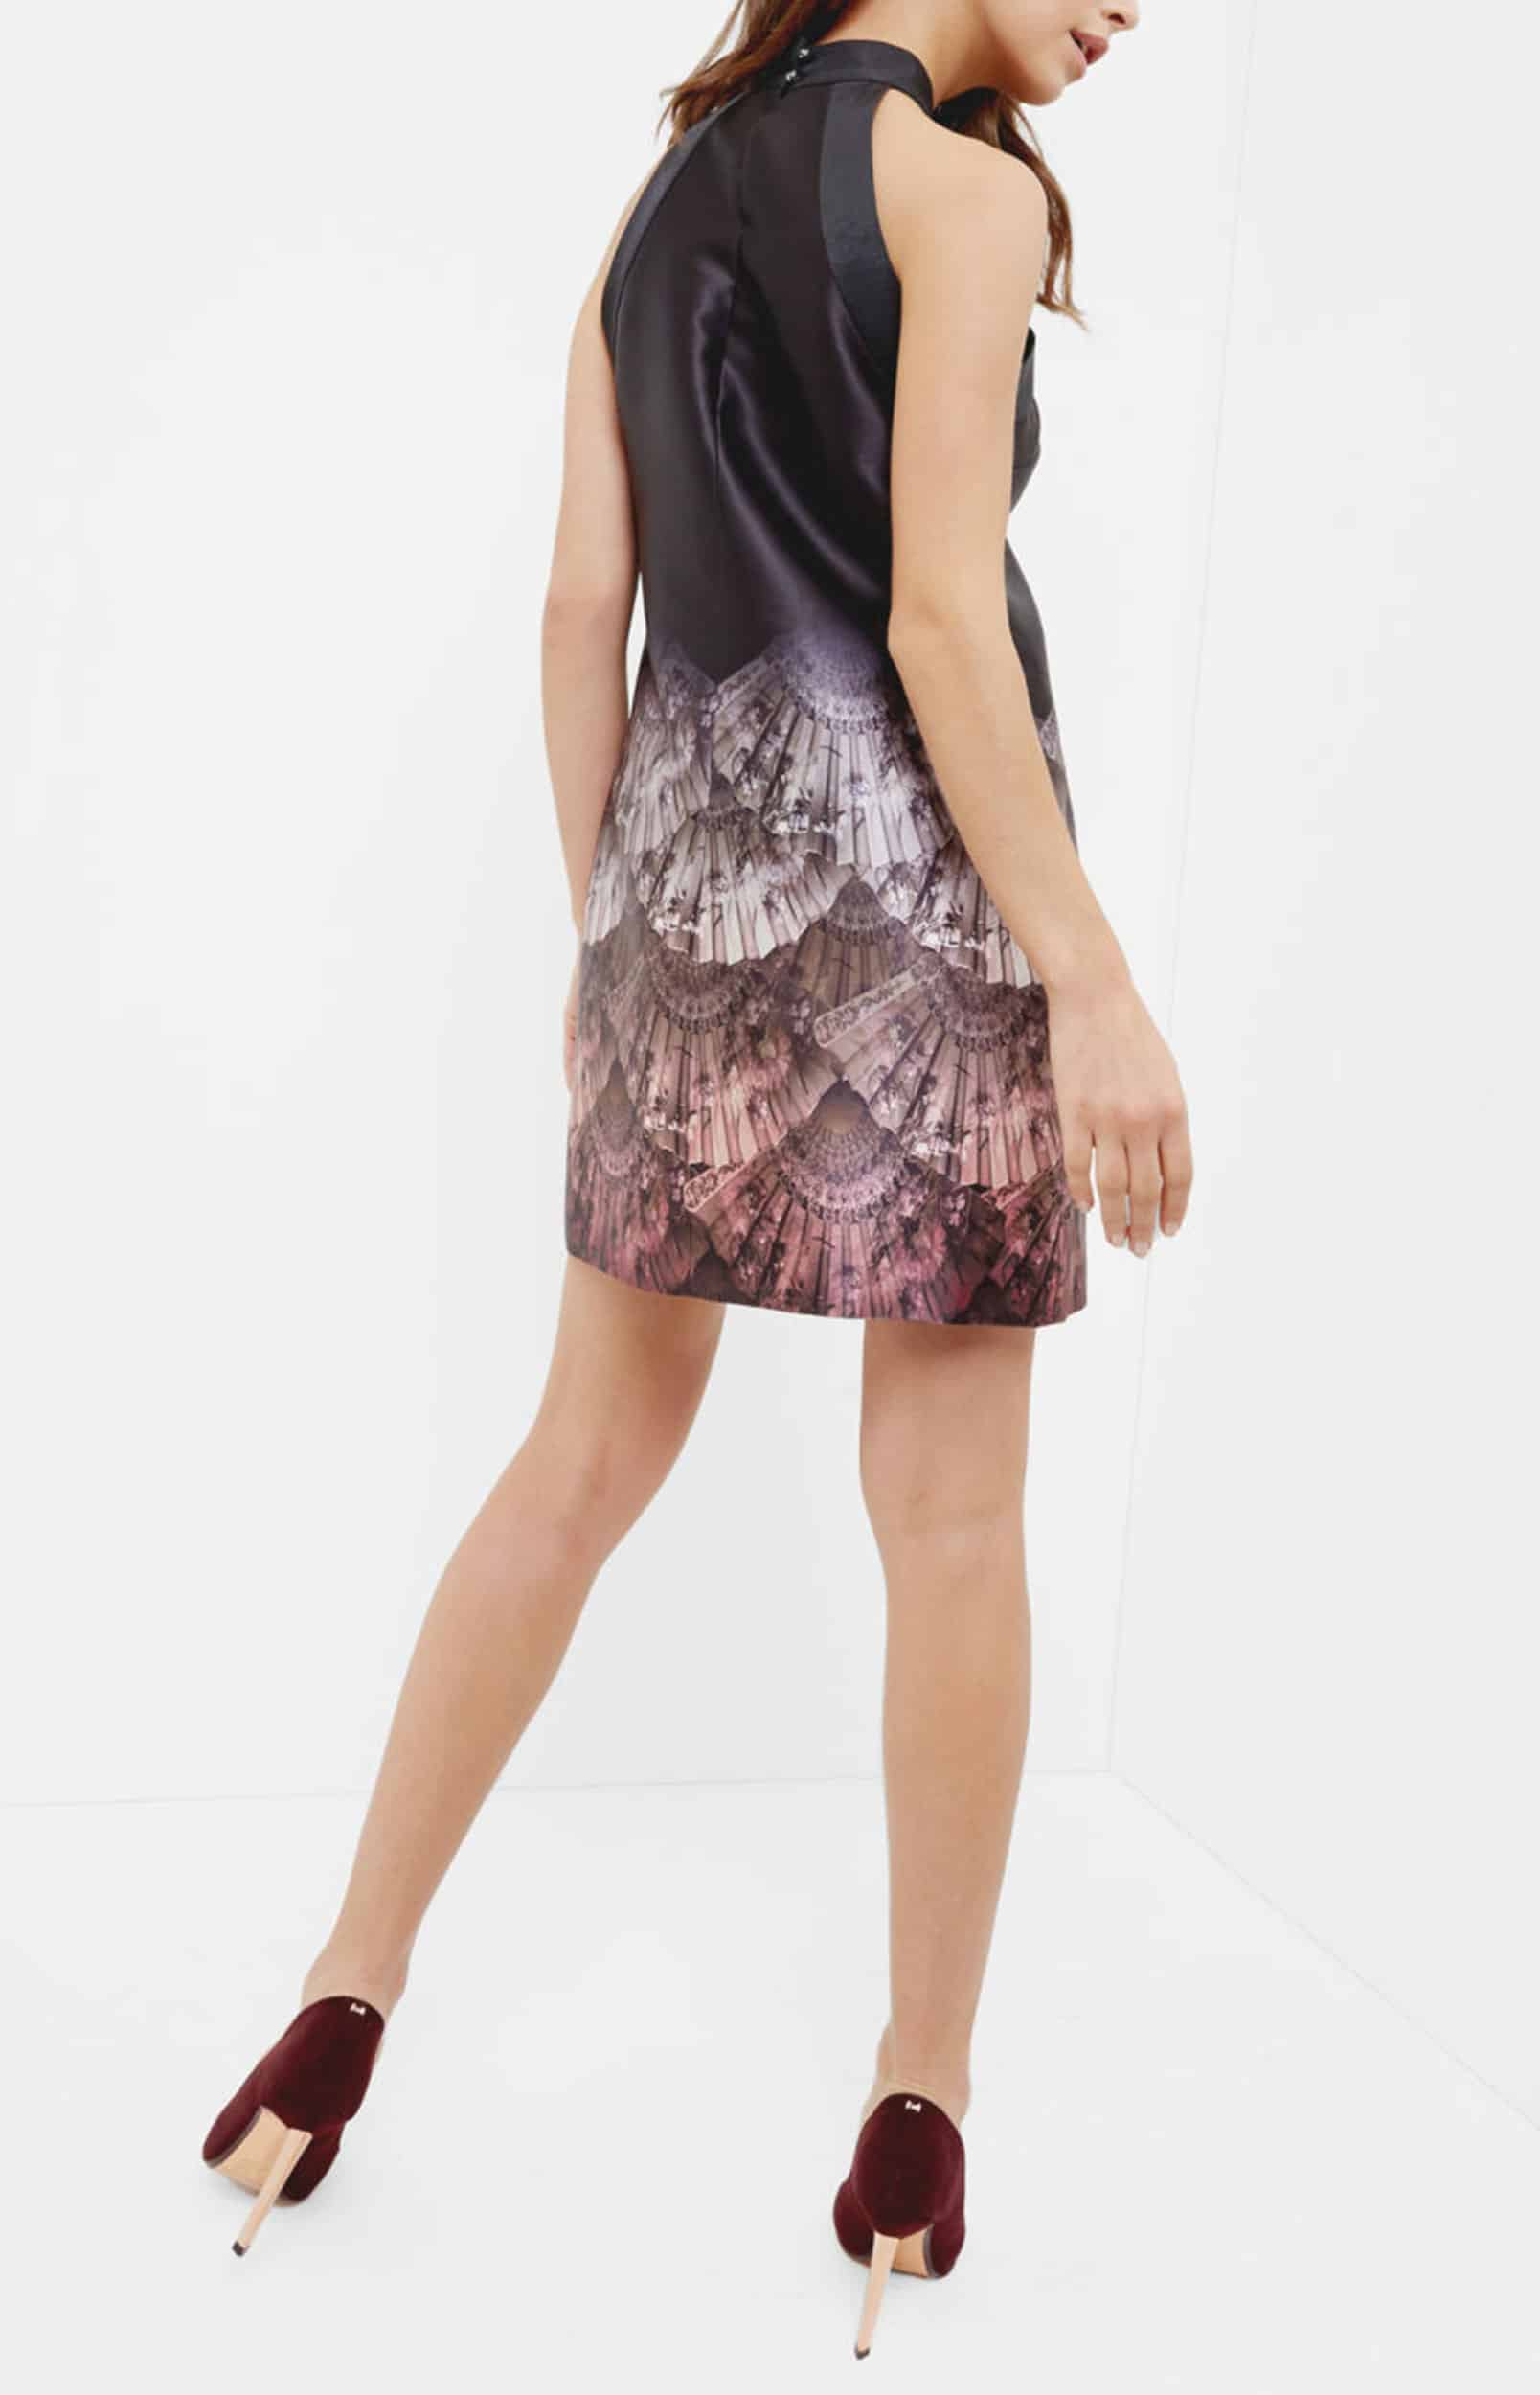 Iznajmljivanje haljina Nis - Ted Baker - Rent A Dress Nis